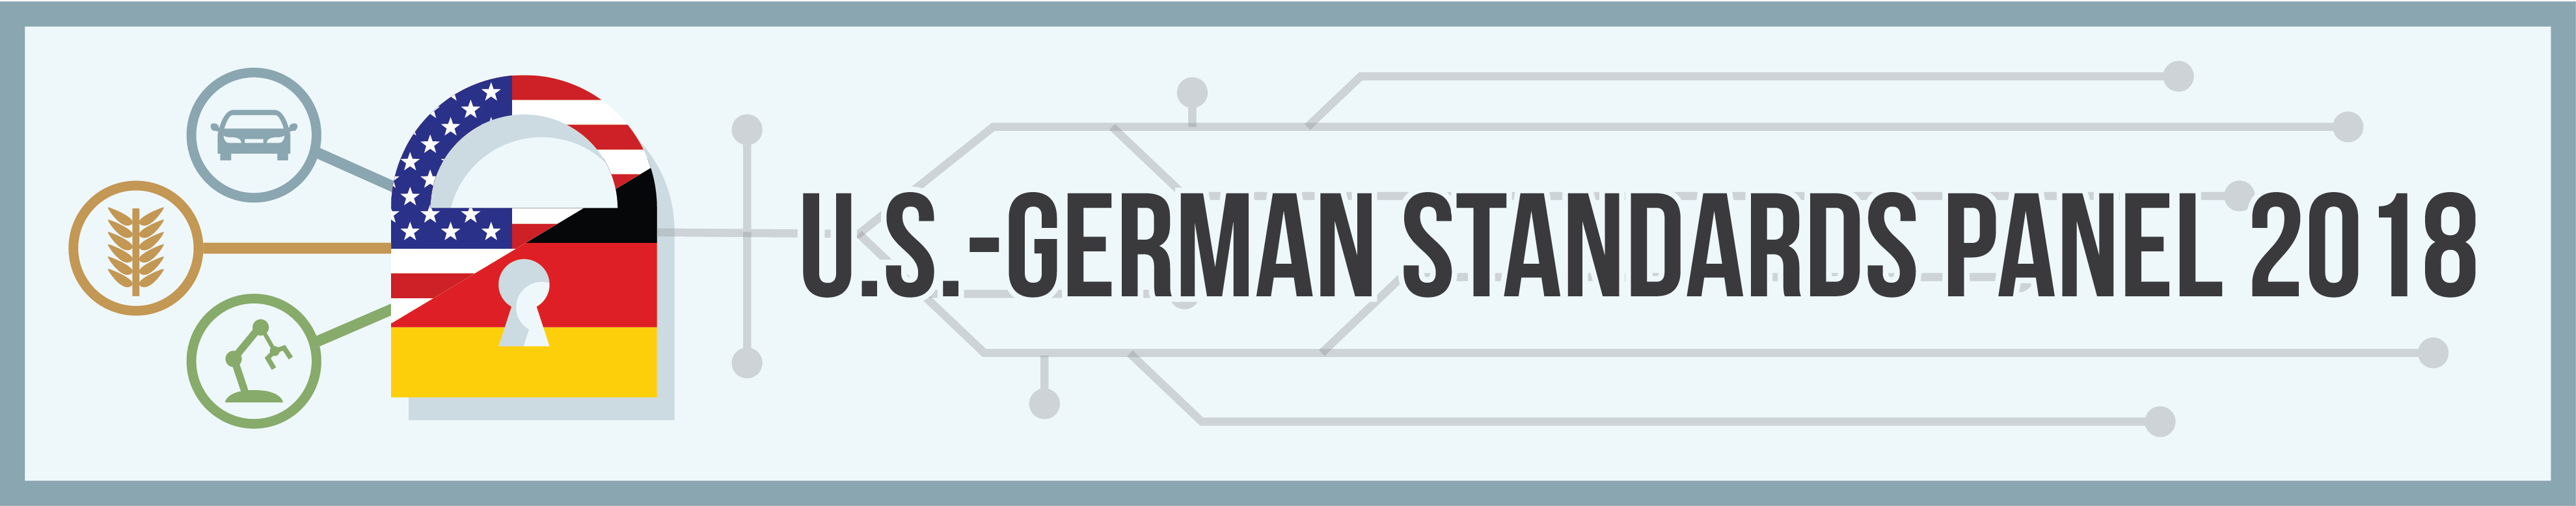 U.S.-German Standards Panel 2018, Securing Future Technologies - Cybersecurity and other Challenges and solutions for Smart Manufacturing, Mobility, and Agriculture